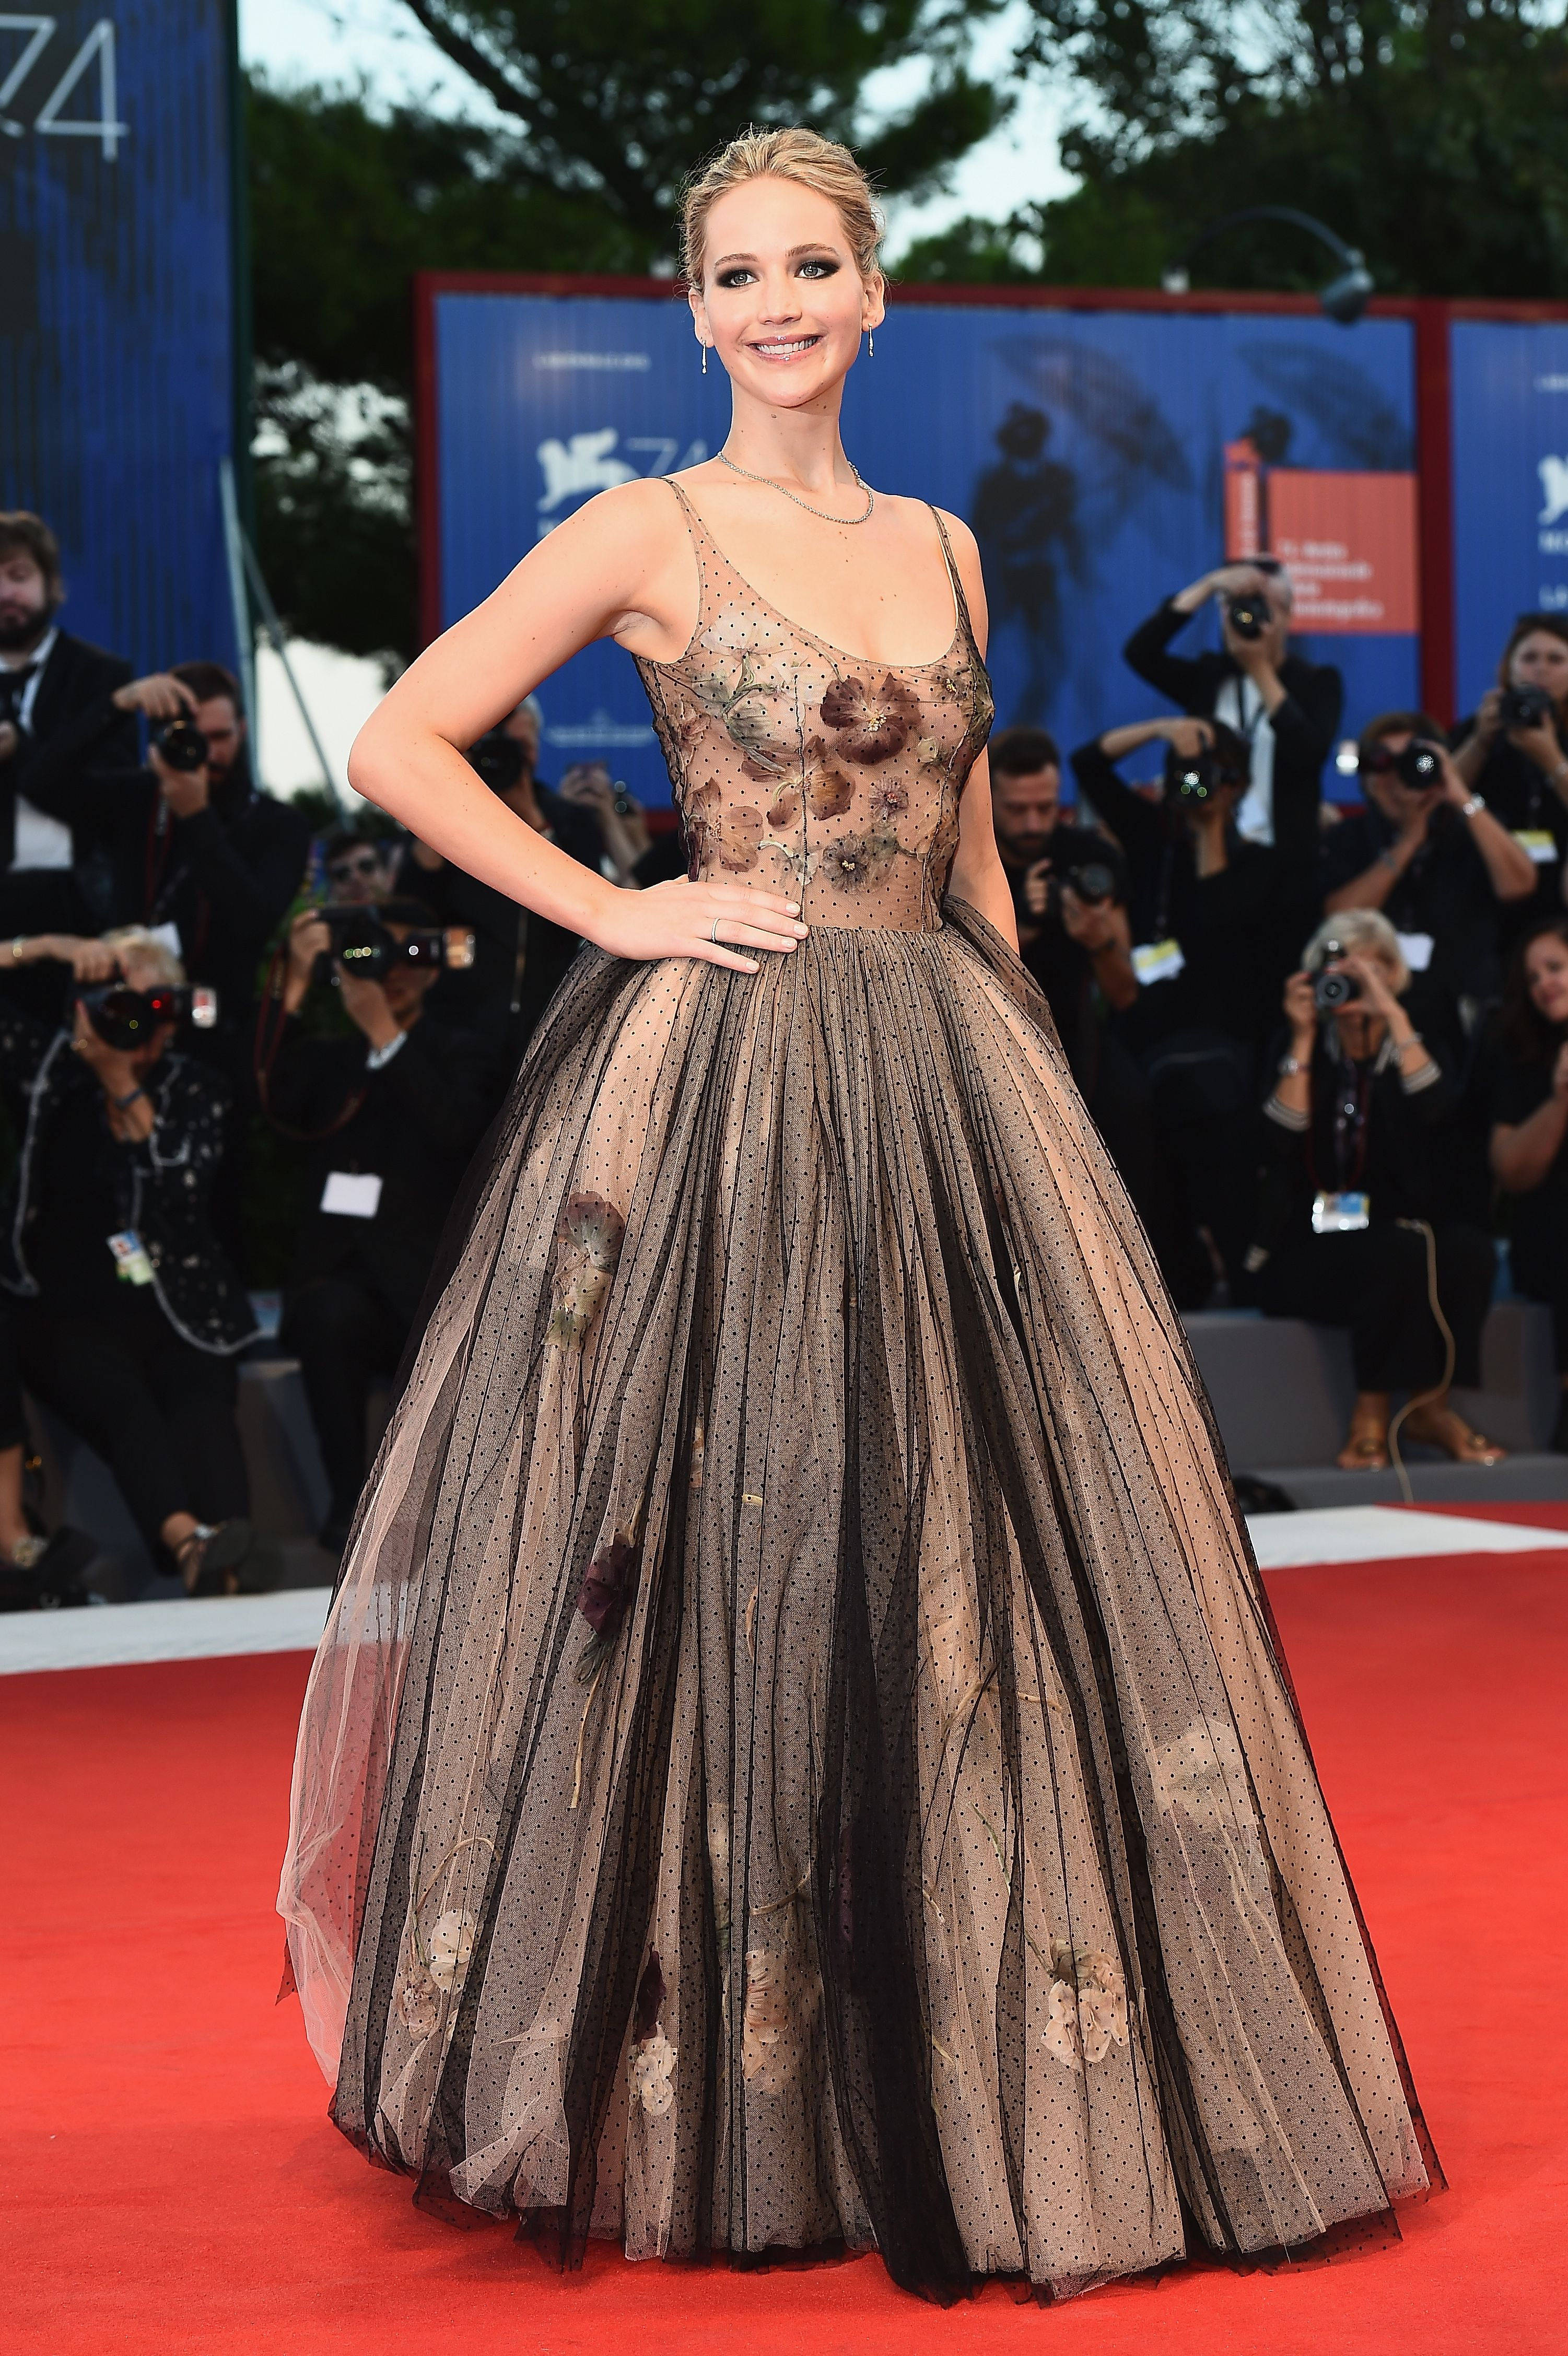 From Street Style To Red Carpet: Jennifer Lawrence's HOTTEST Looks 3